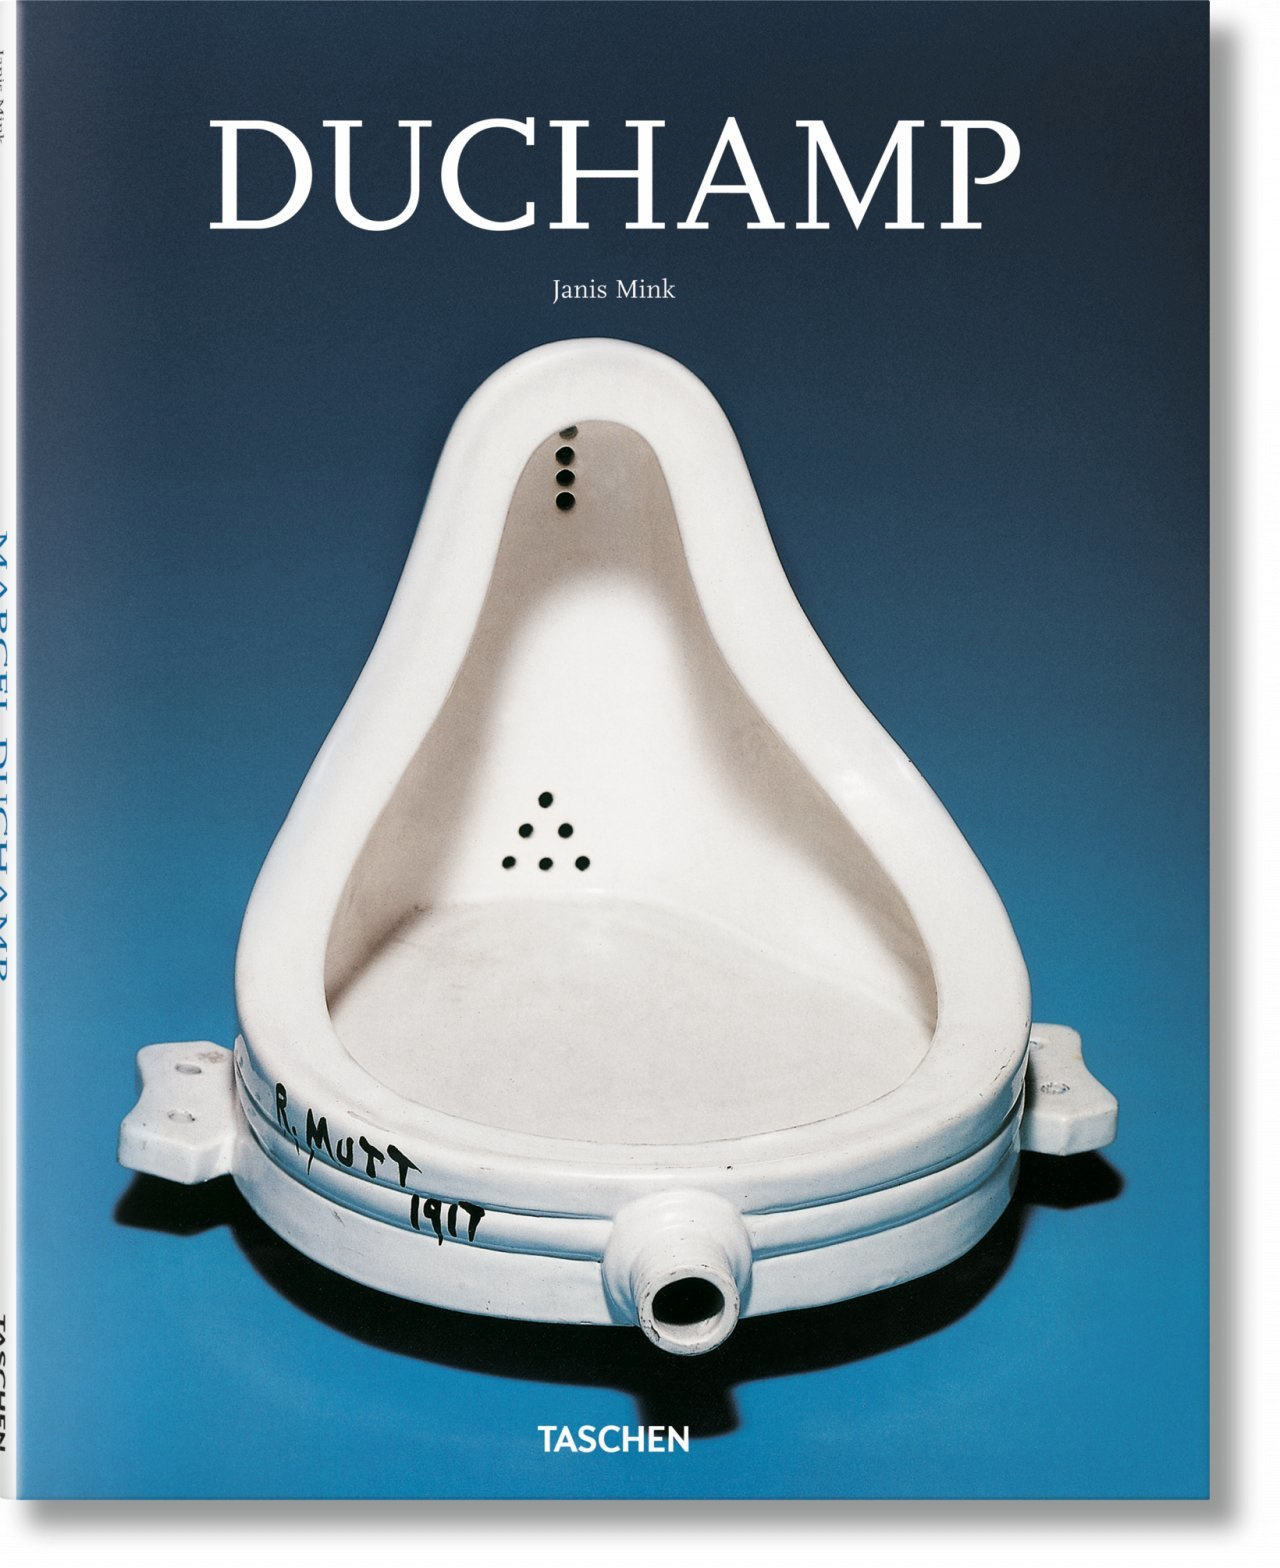 KR-25 ART, DUCHAMP